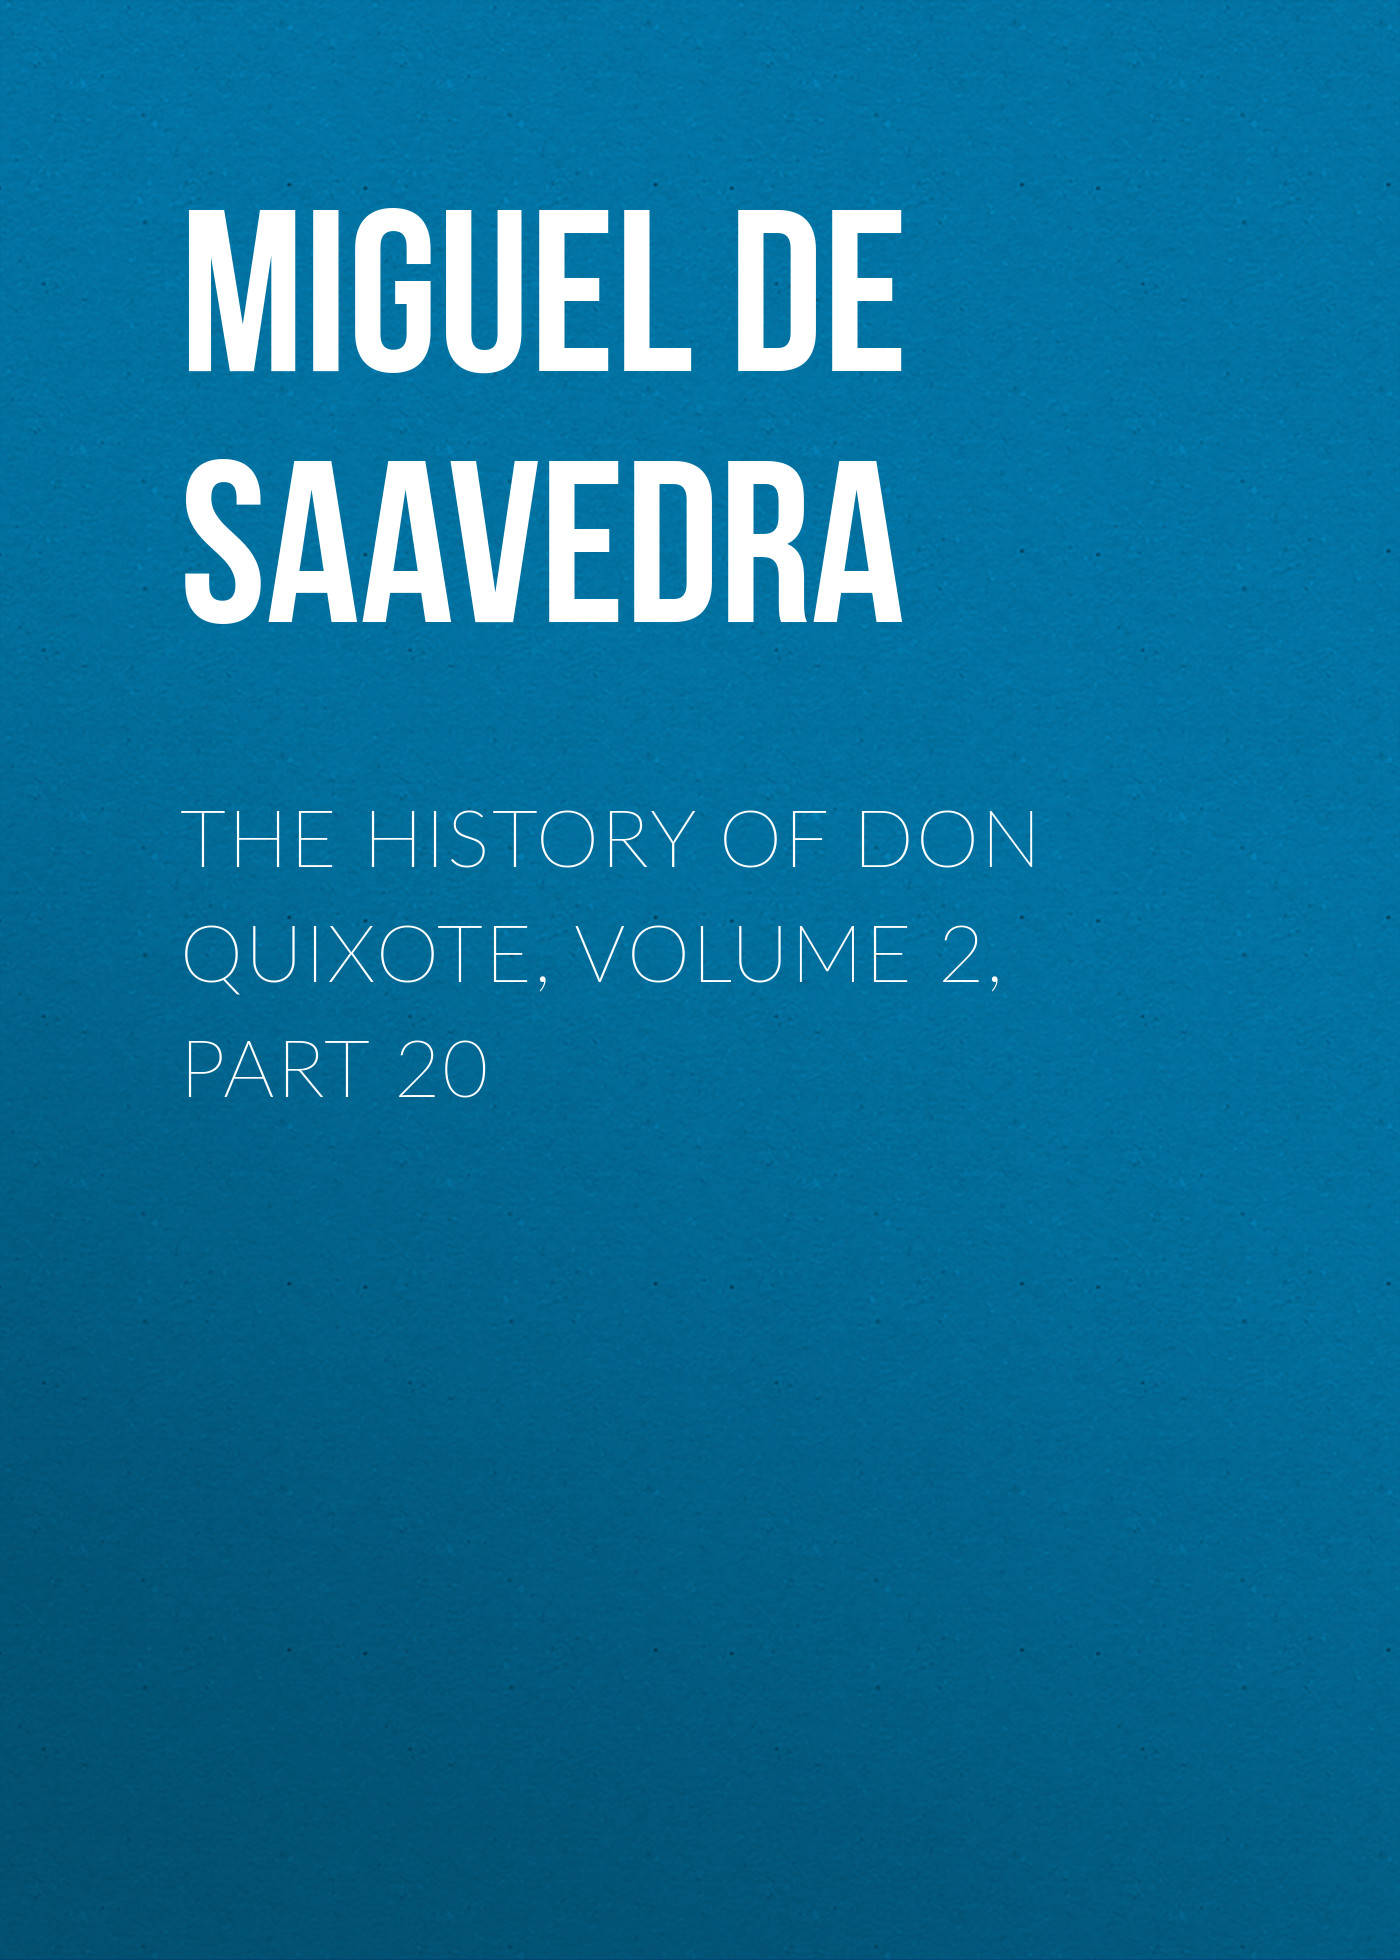 Мигель де Сервантес Сааведра The History of Don Quixote, Volume 2, Part 20 rasmus björn anderson the heimskringla a history of the norse kings volume 5 part 2